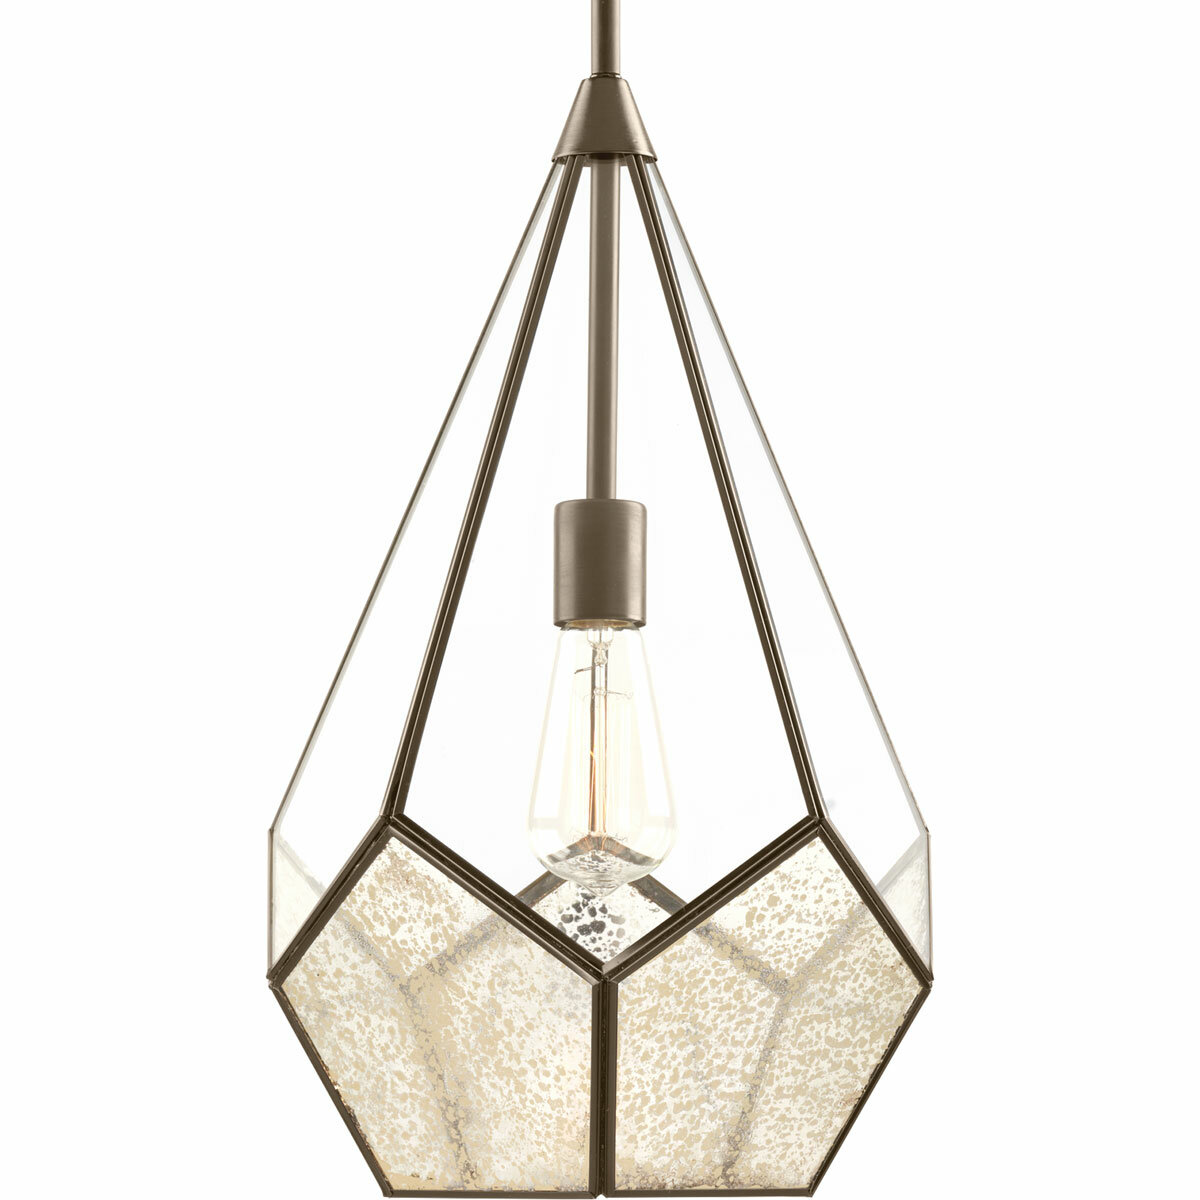 Brayden Studio Brigman 1 Light Single Geometric Pendant Reviews Wayfair